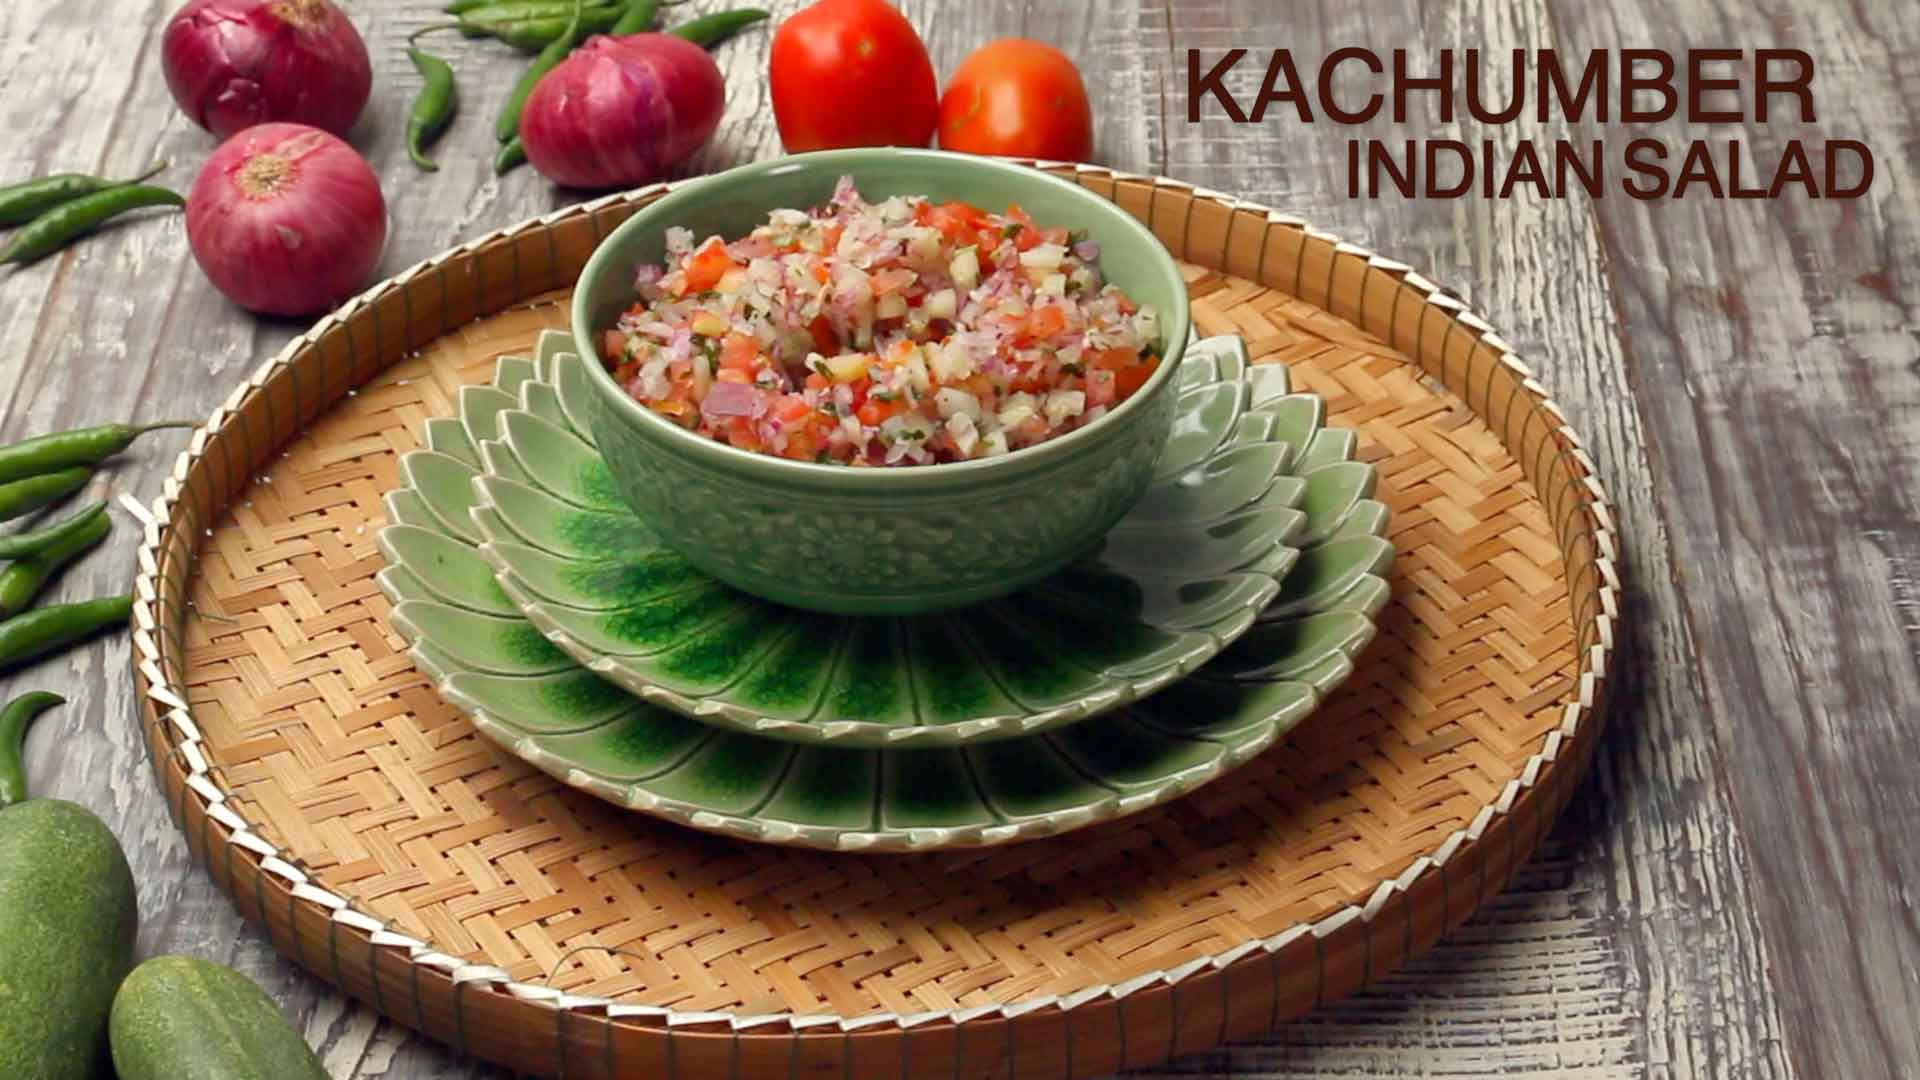 Kachumber Recipe | How to make easy Indian Kachumber salad